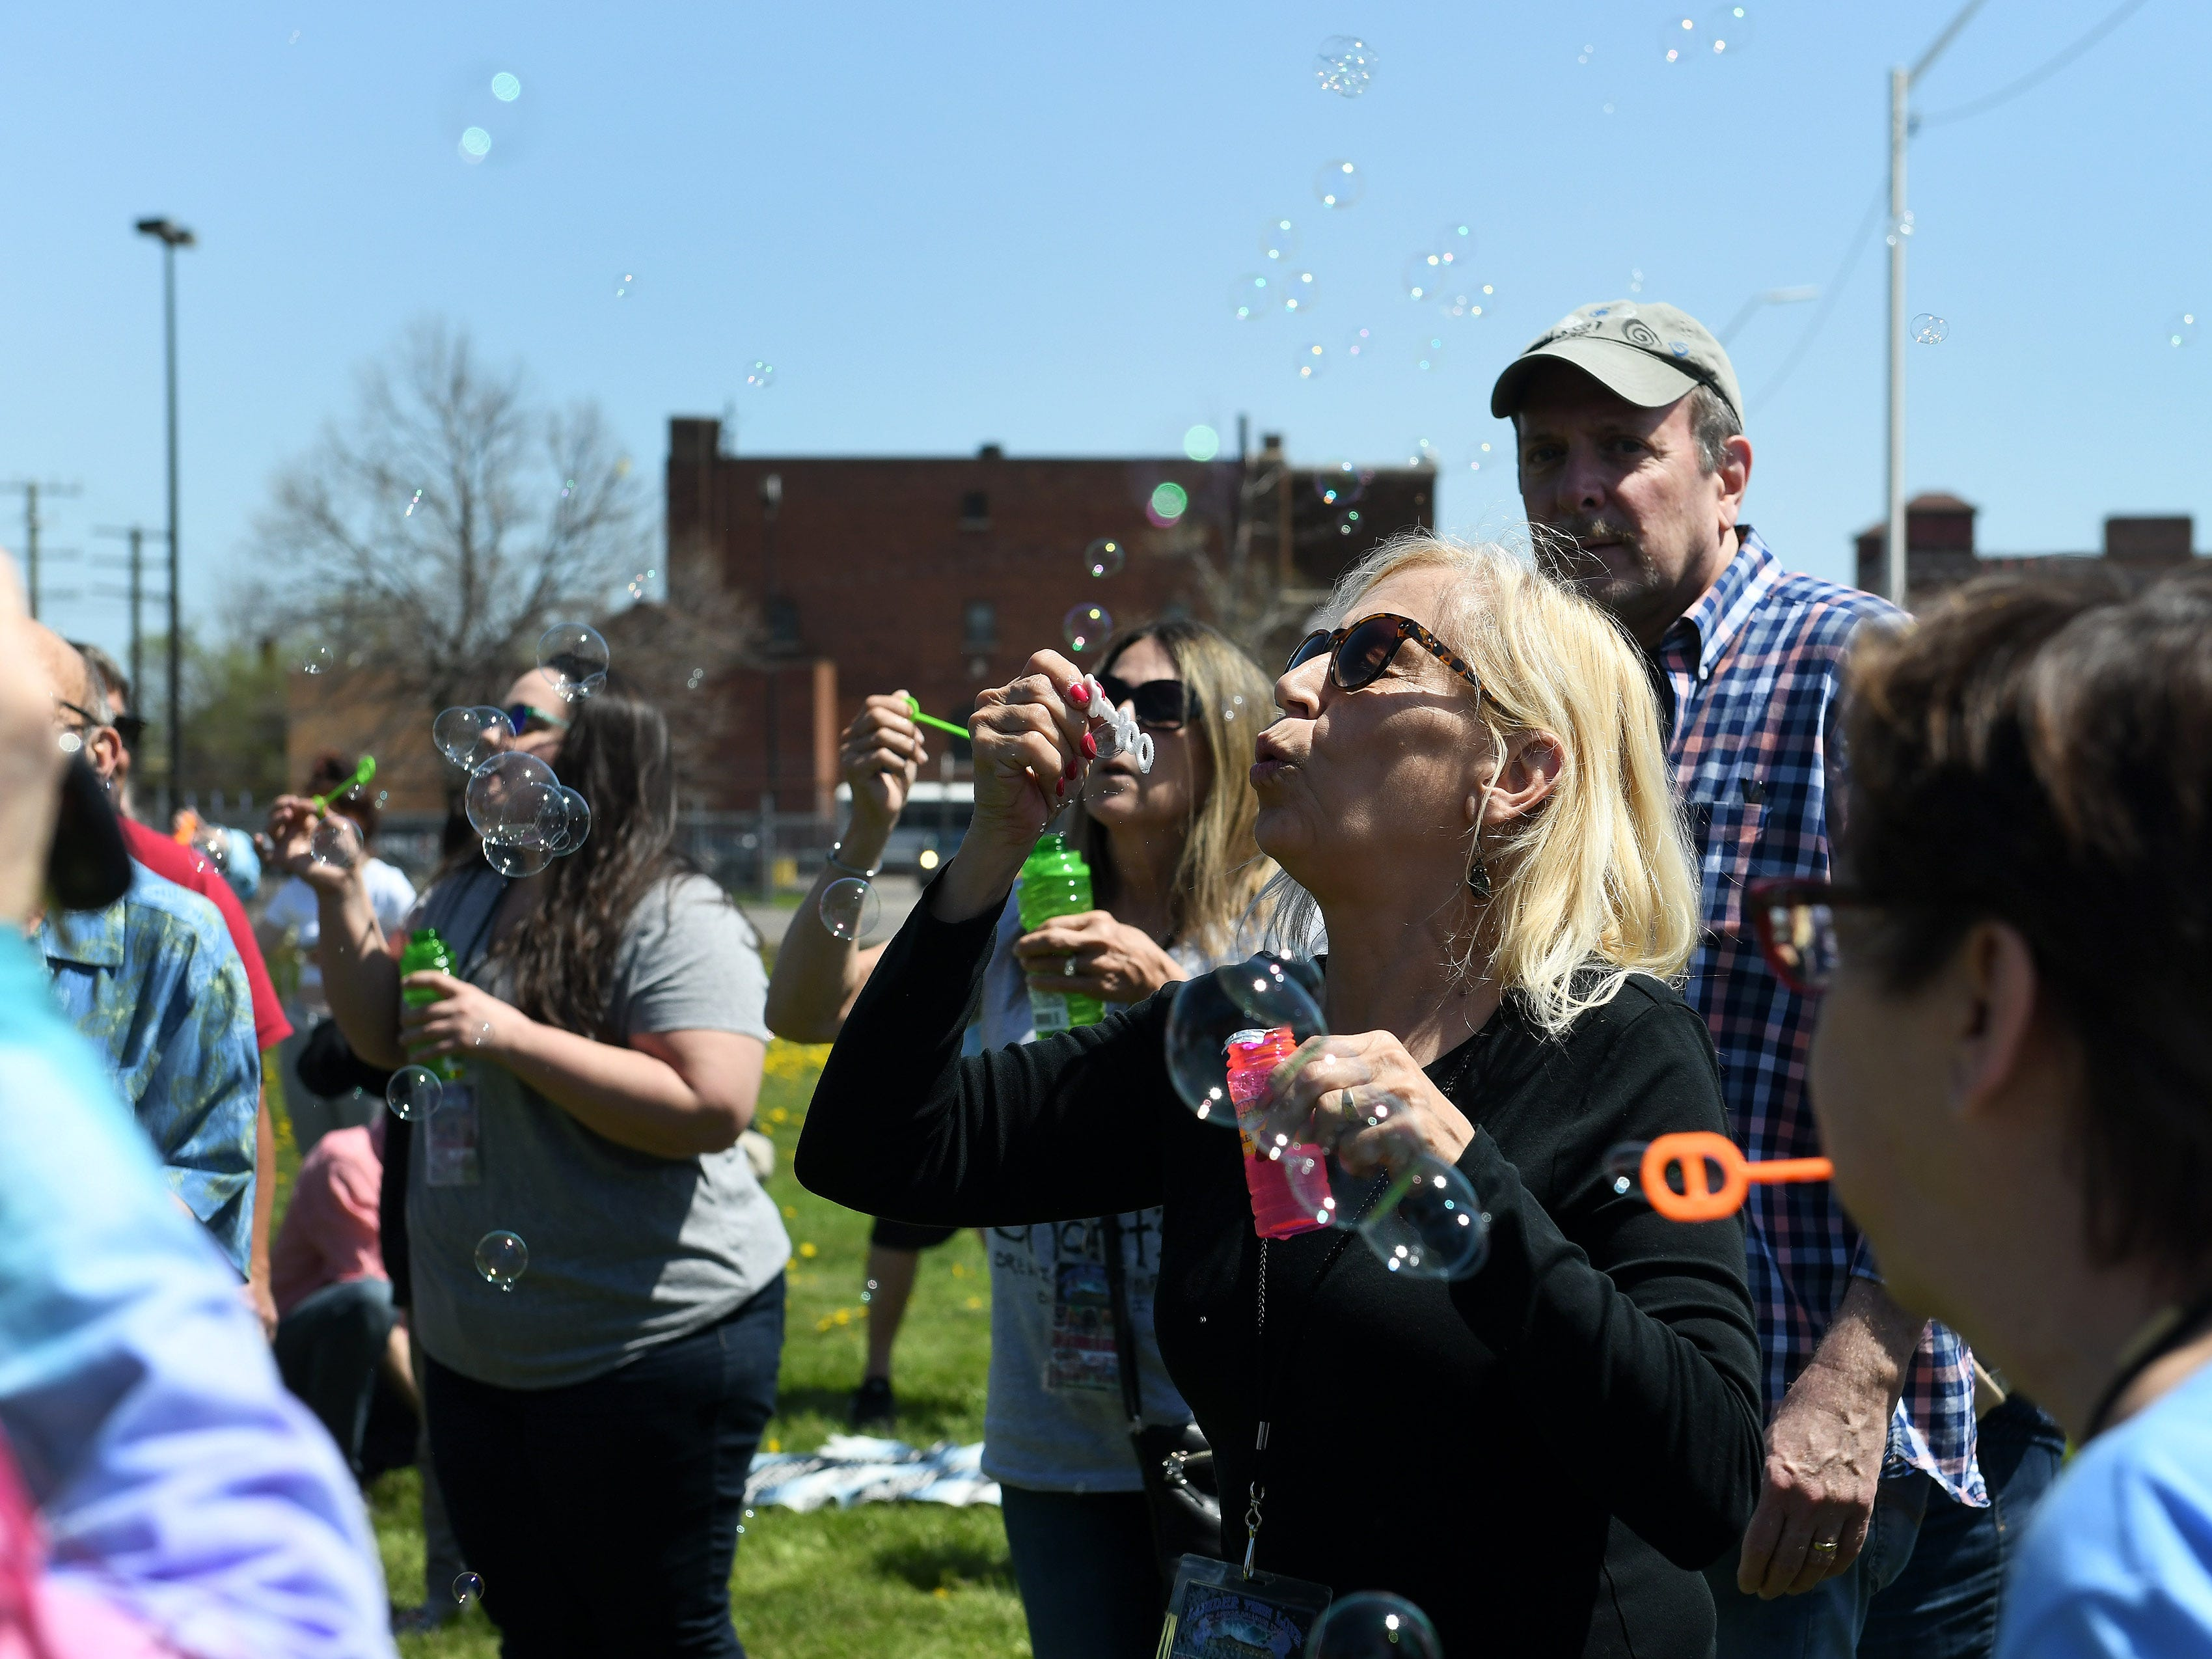 Linda Flynn, 62, of Taylor, blond with sunglasses, blows bubbles with others as people gather to celebrate the life of Russ Gibb.